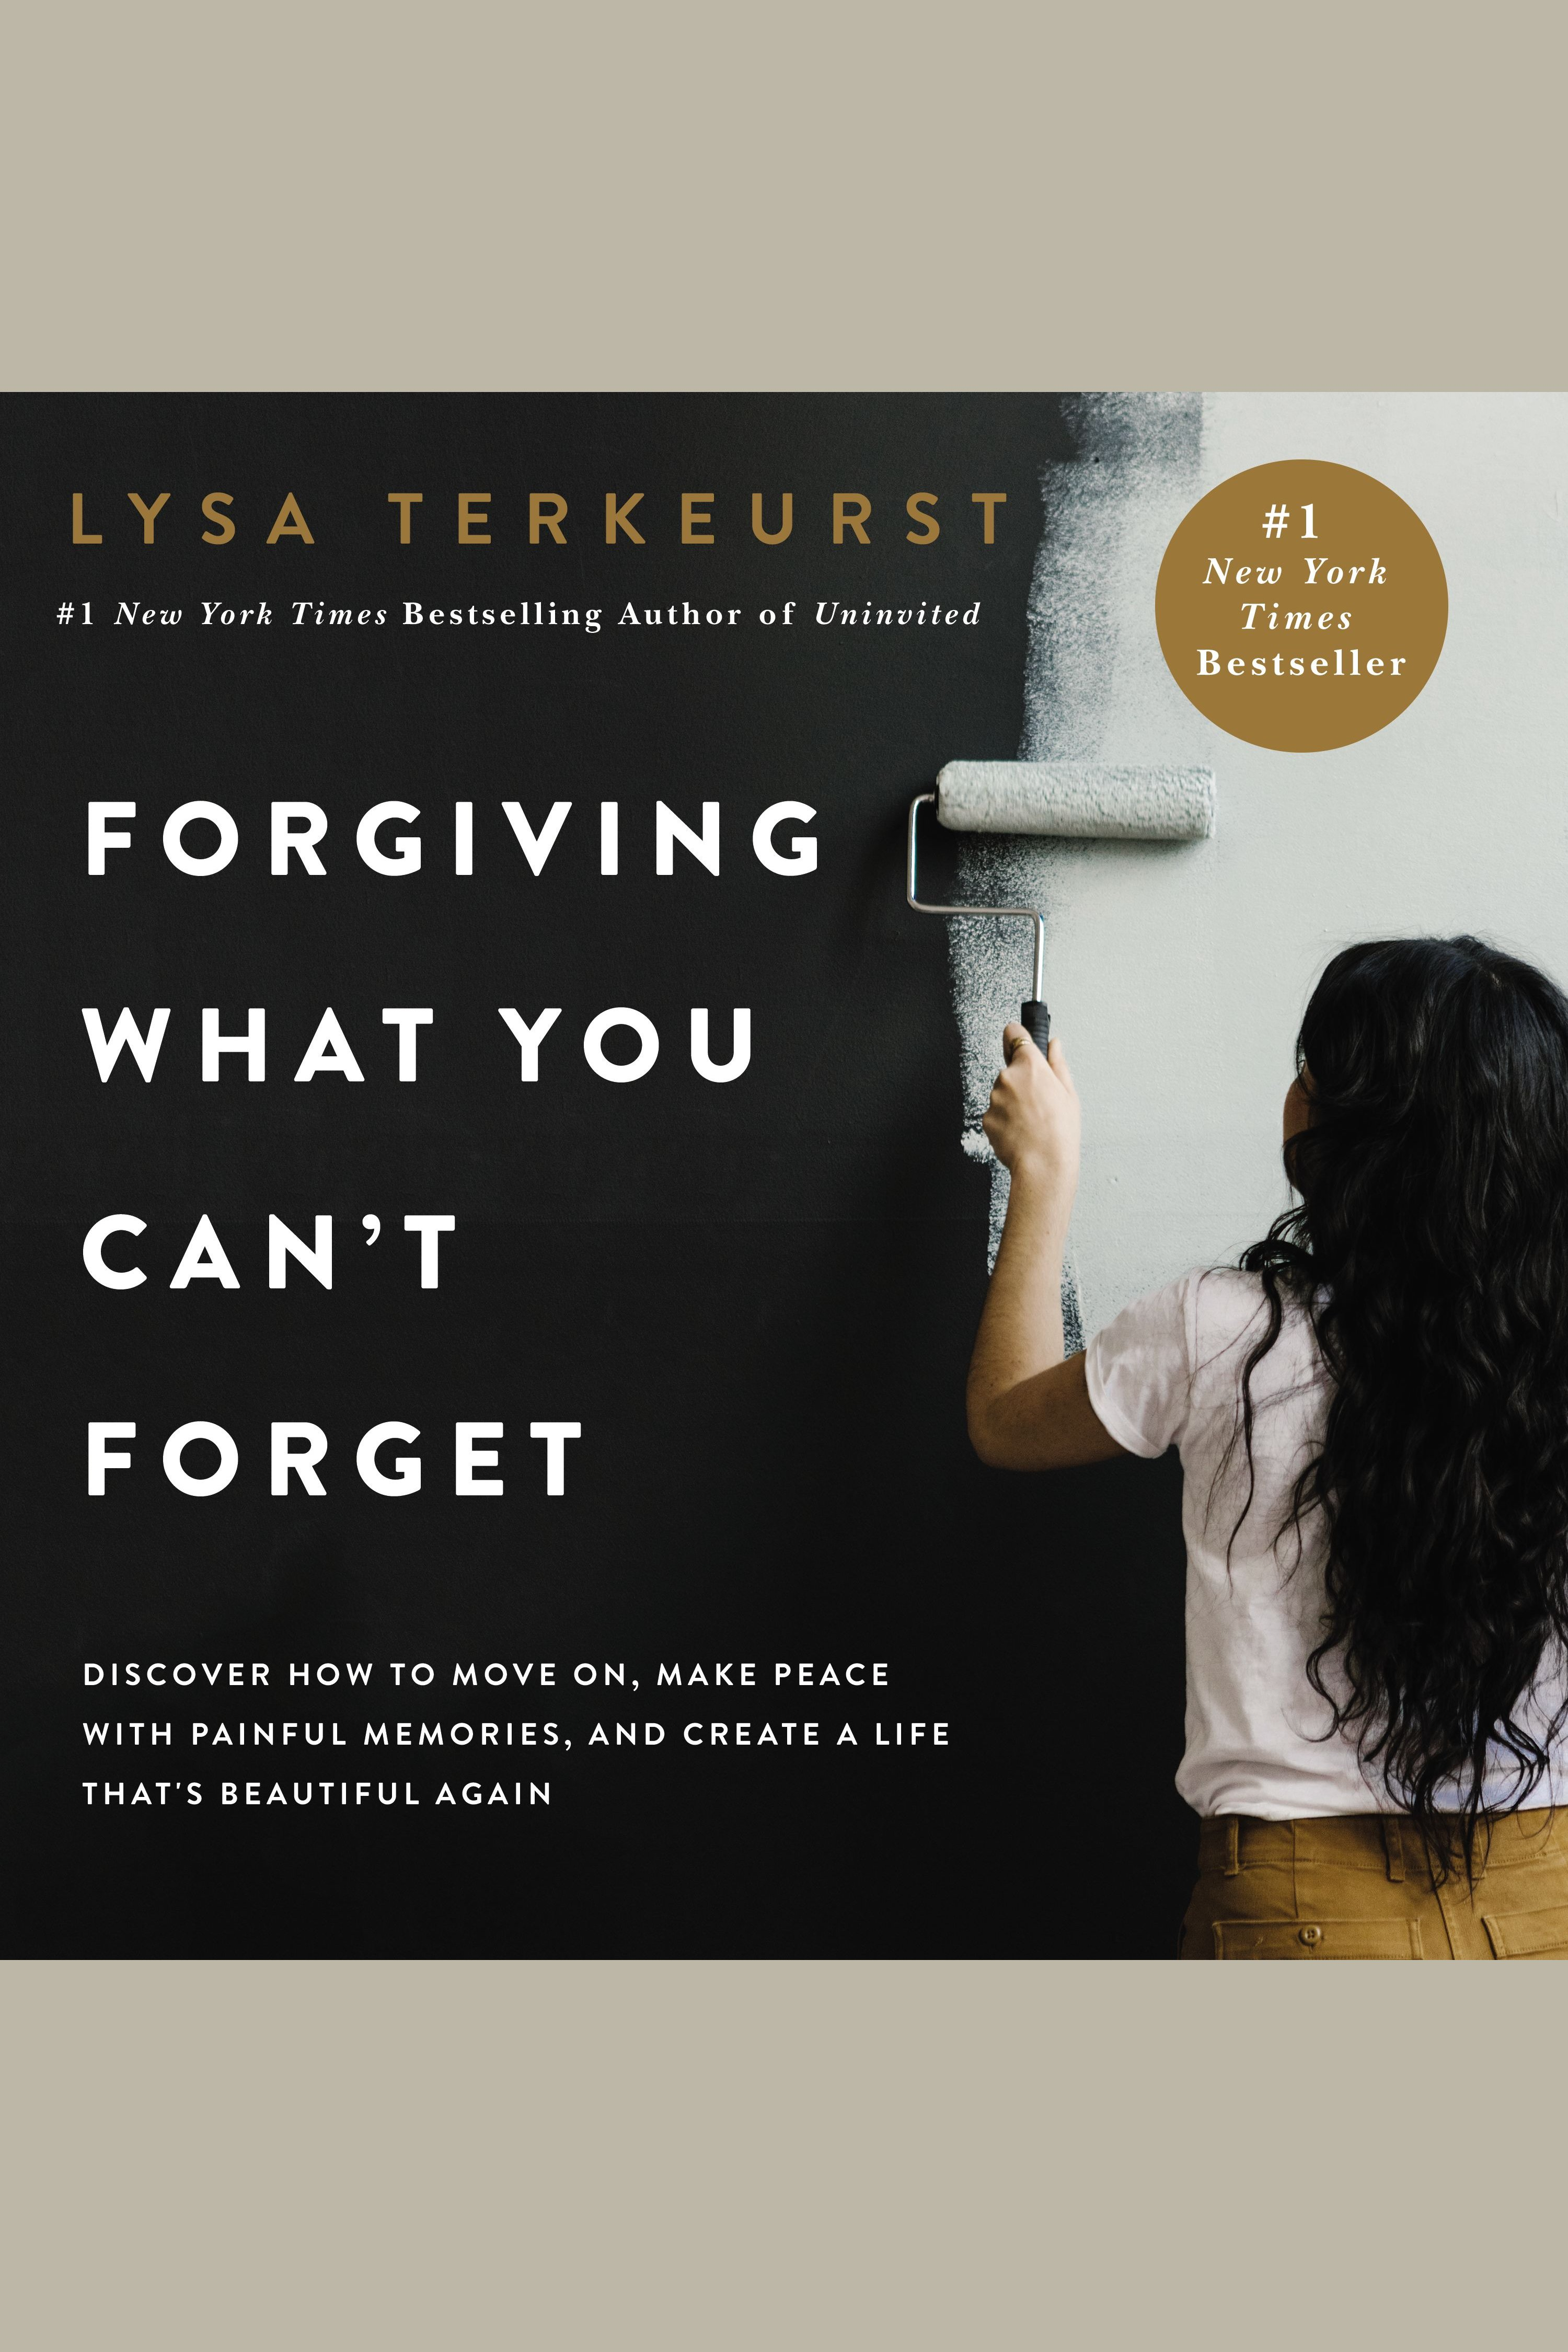 Forgiving What You Can't Forget Discover How to Move On, Make Peace with Painful Memories, and Create a Life That's Beautiful Again